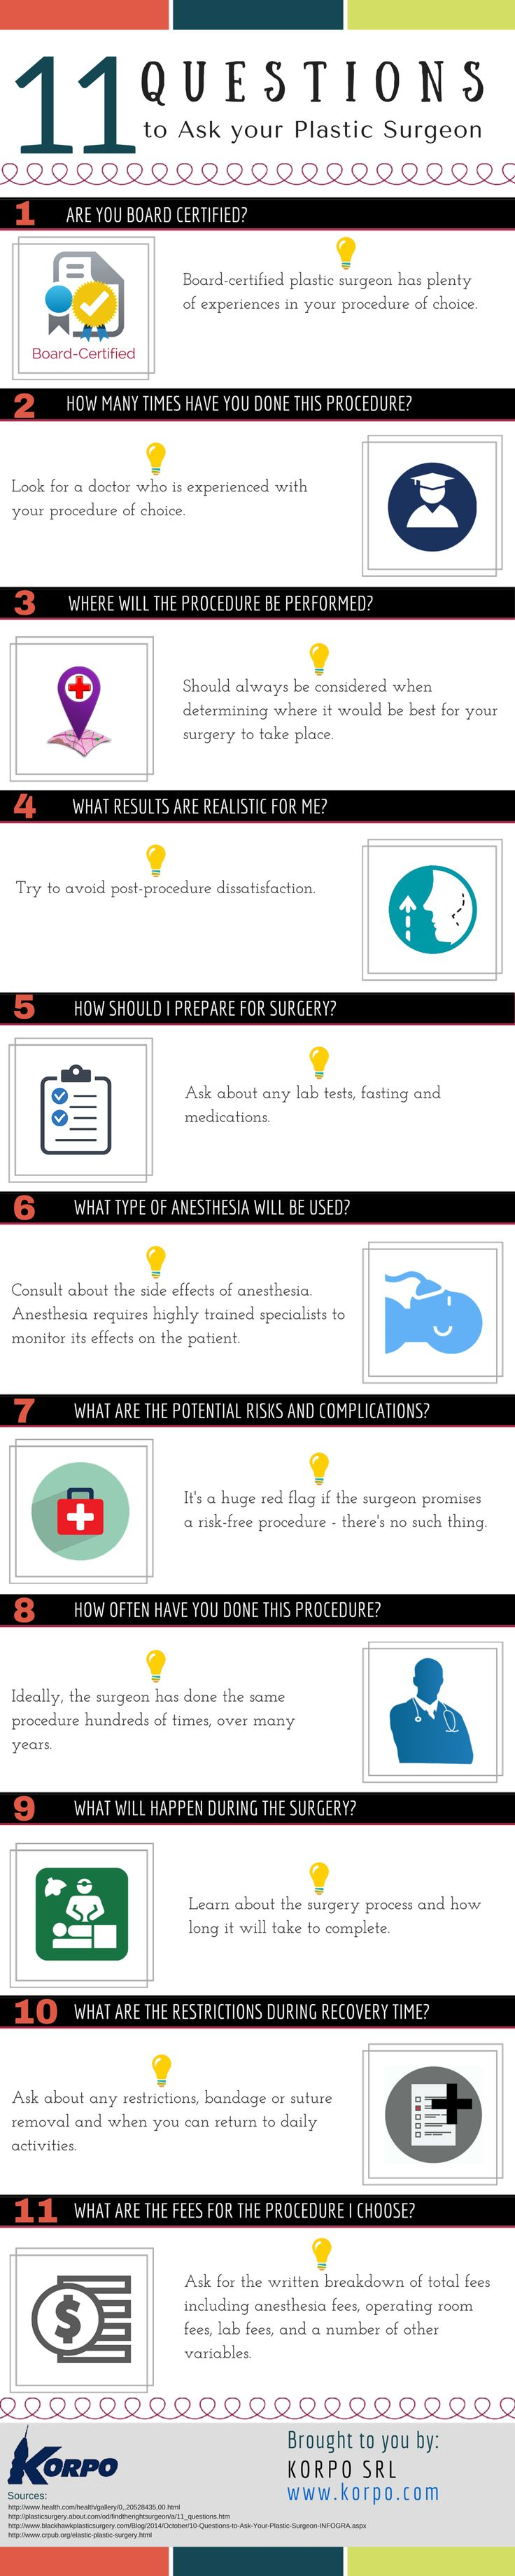 Infographic: 11 Questions to Ask your Plastic Surgeon - These 11 questions are the most important when it comes to the safety and success of your plastic surgery. Find out what you really need to know and why before choosing a plastic surgeon to perform your cosmetic procedure and ensure that the cosmetic surgeon you choose is well-matched to deliver the outcome you desire. Infographic brought to you by Korpo SRL